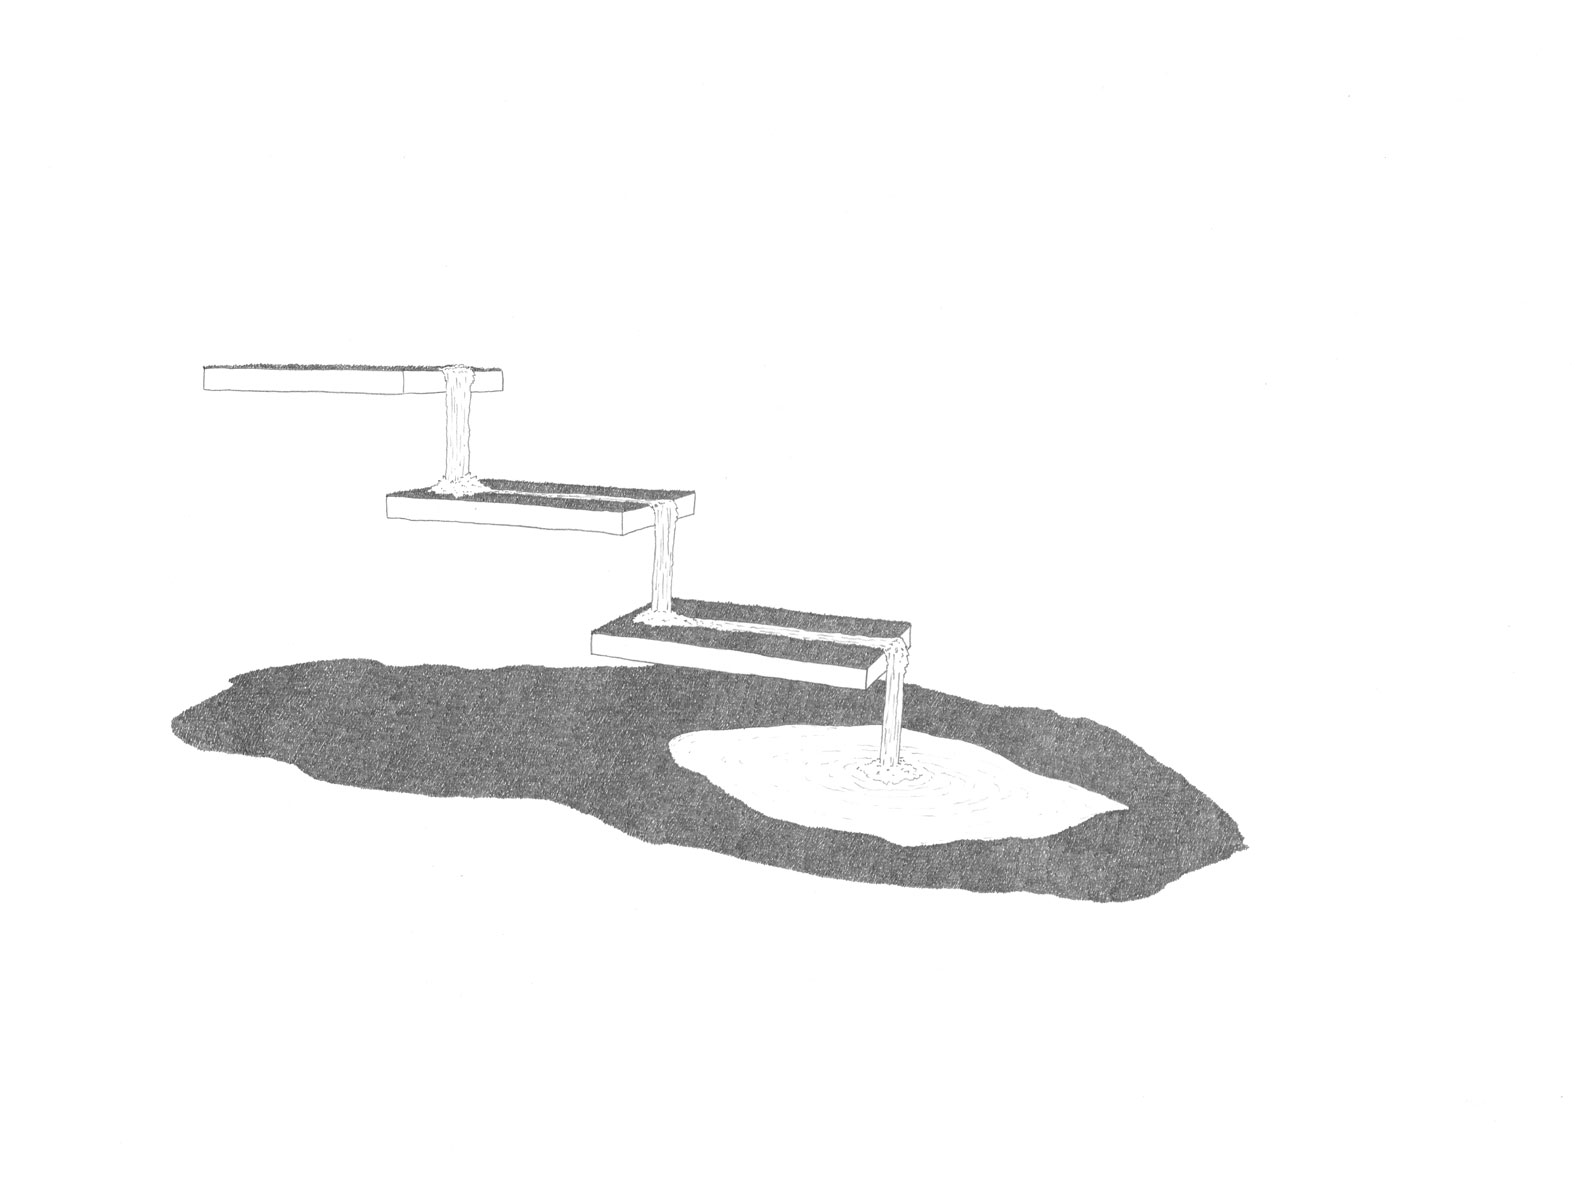 mickael lianza flatland piano nobile dessin drawing sculpture installation geneva art contemporain